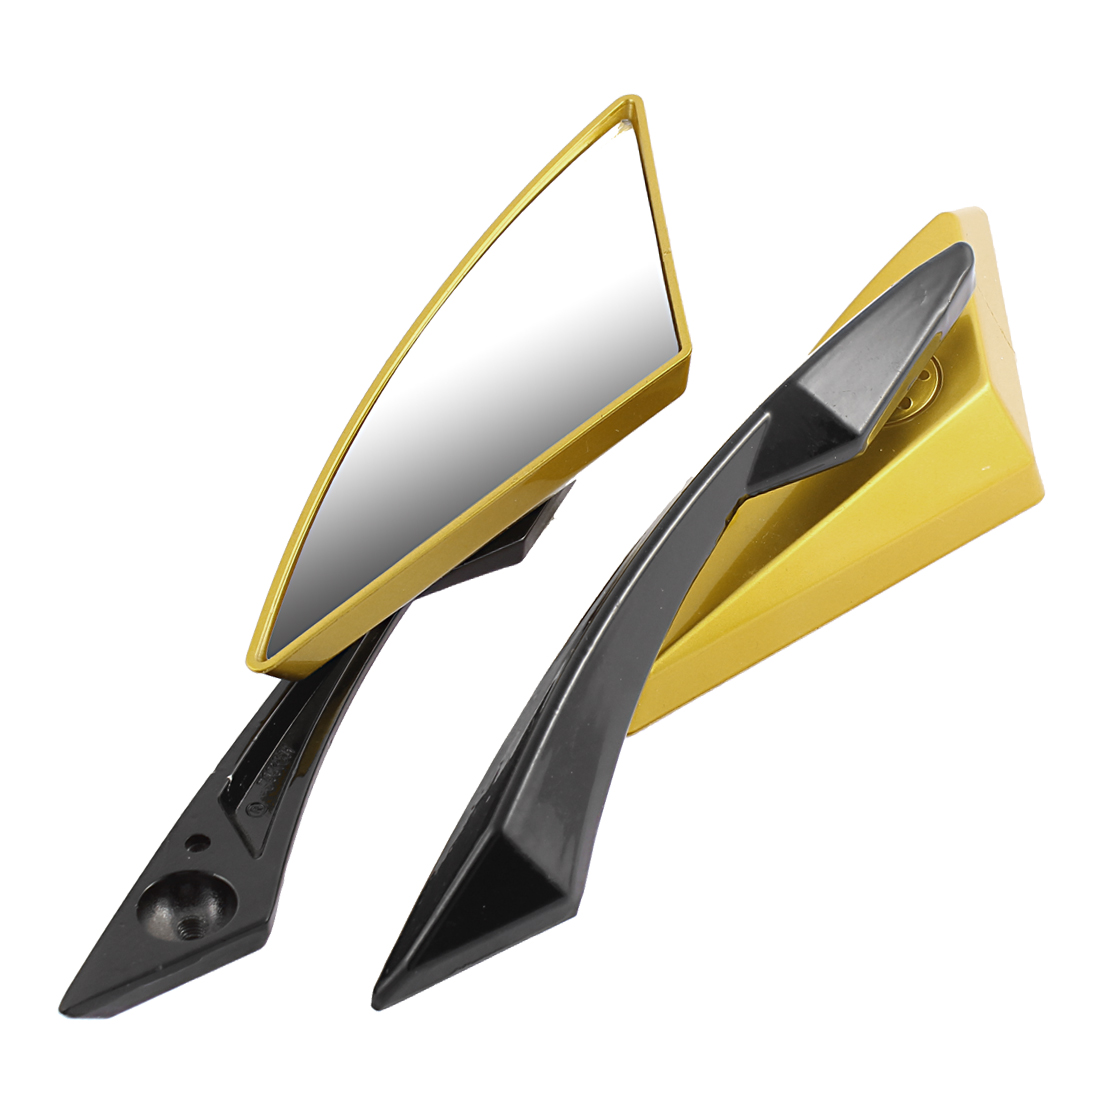 2 Pcs Gold Tone Motorcycle Adjustable Angle Rearview Blind Spot Mirrors for Halley